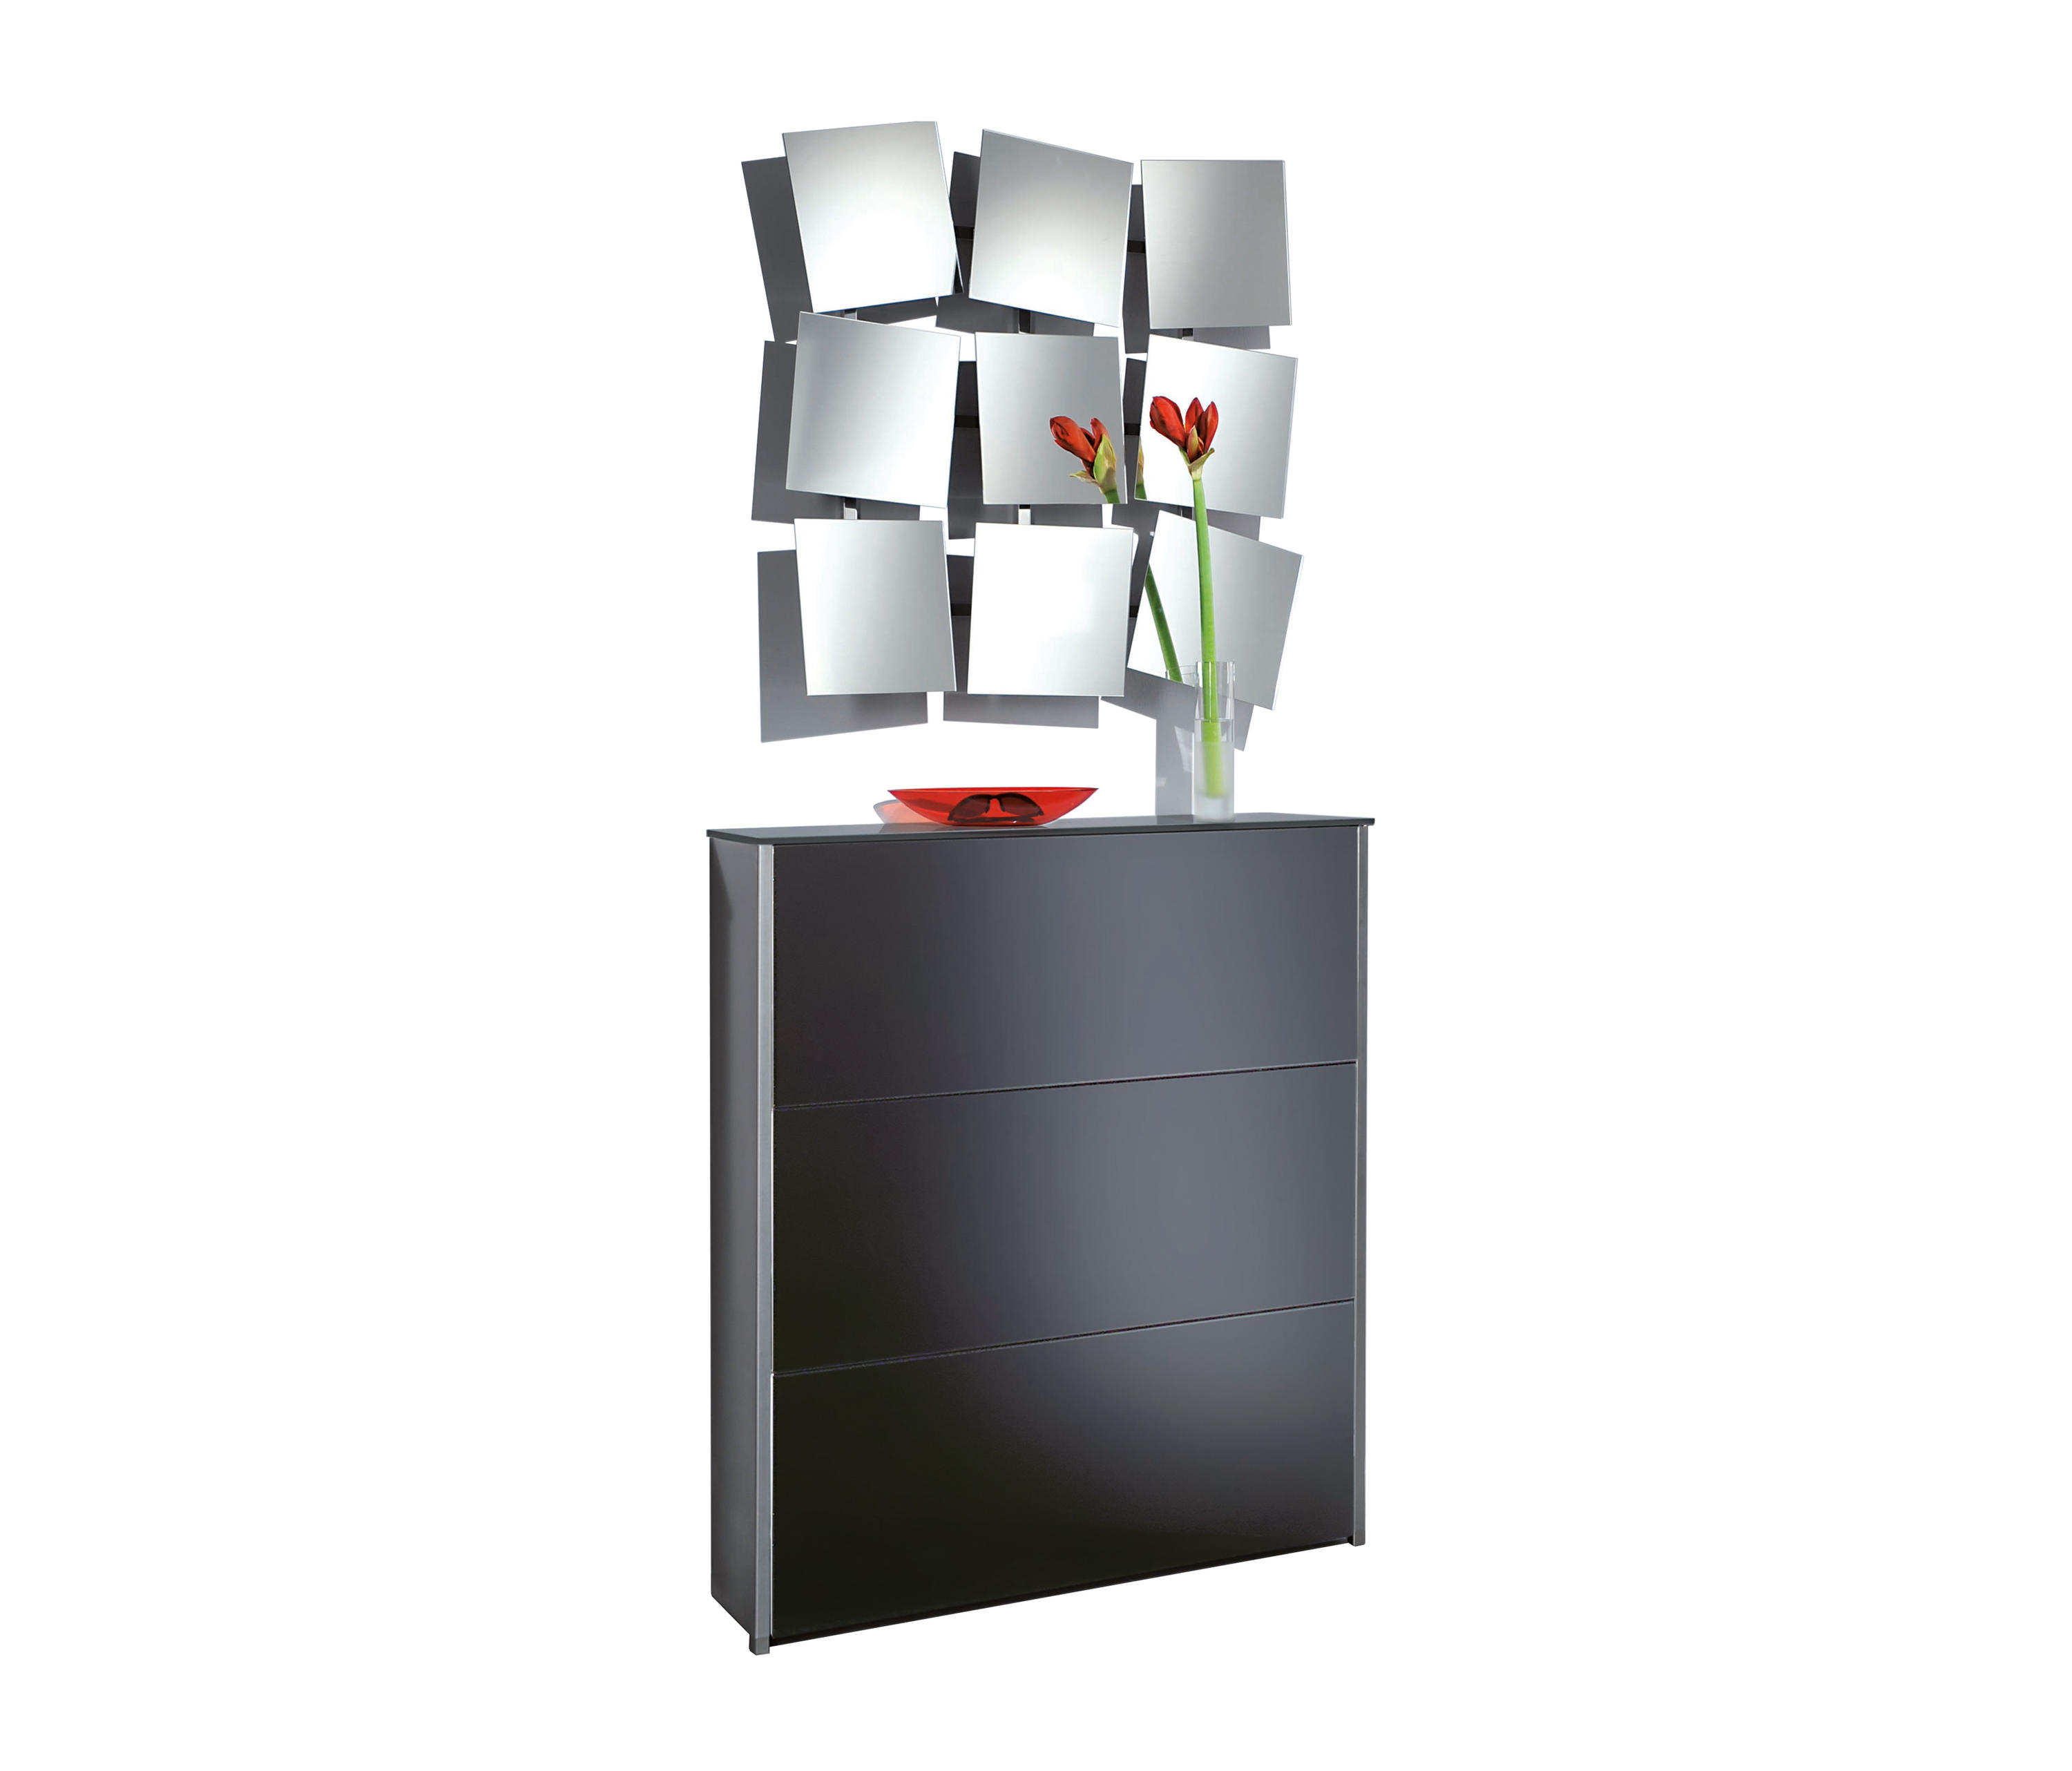 D Tec Atlantic Cabinets From D Tec Architonic